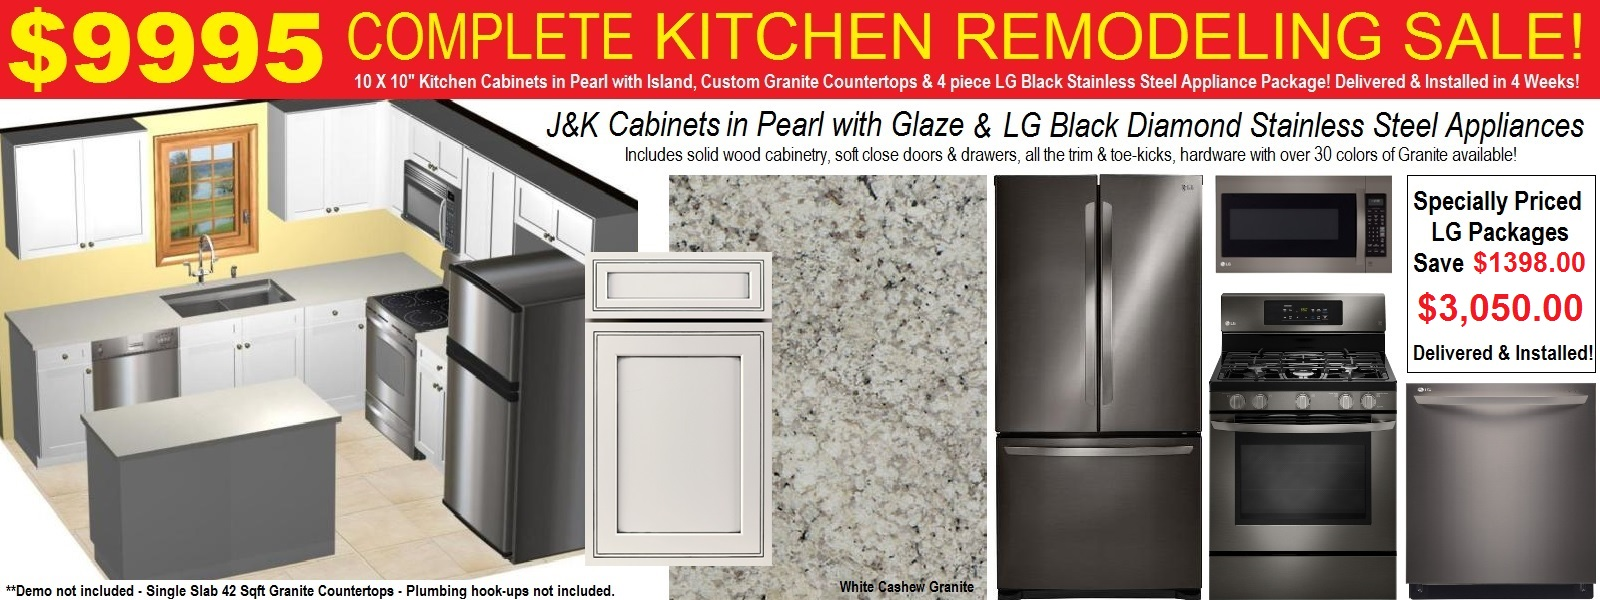 Kitchen Cabinets Countertops Glendale AZ